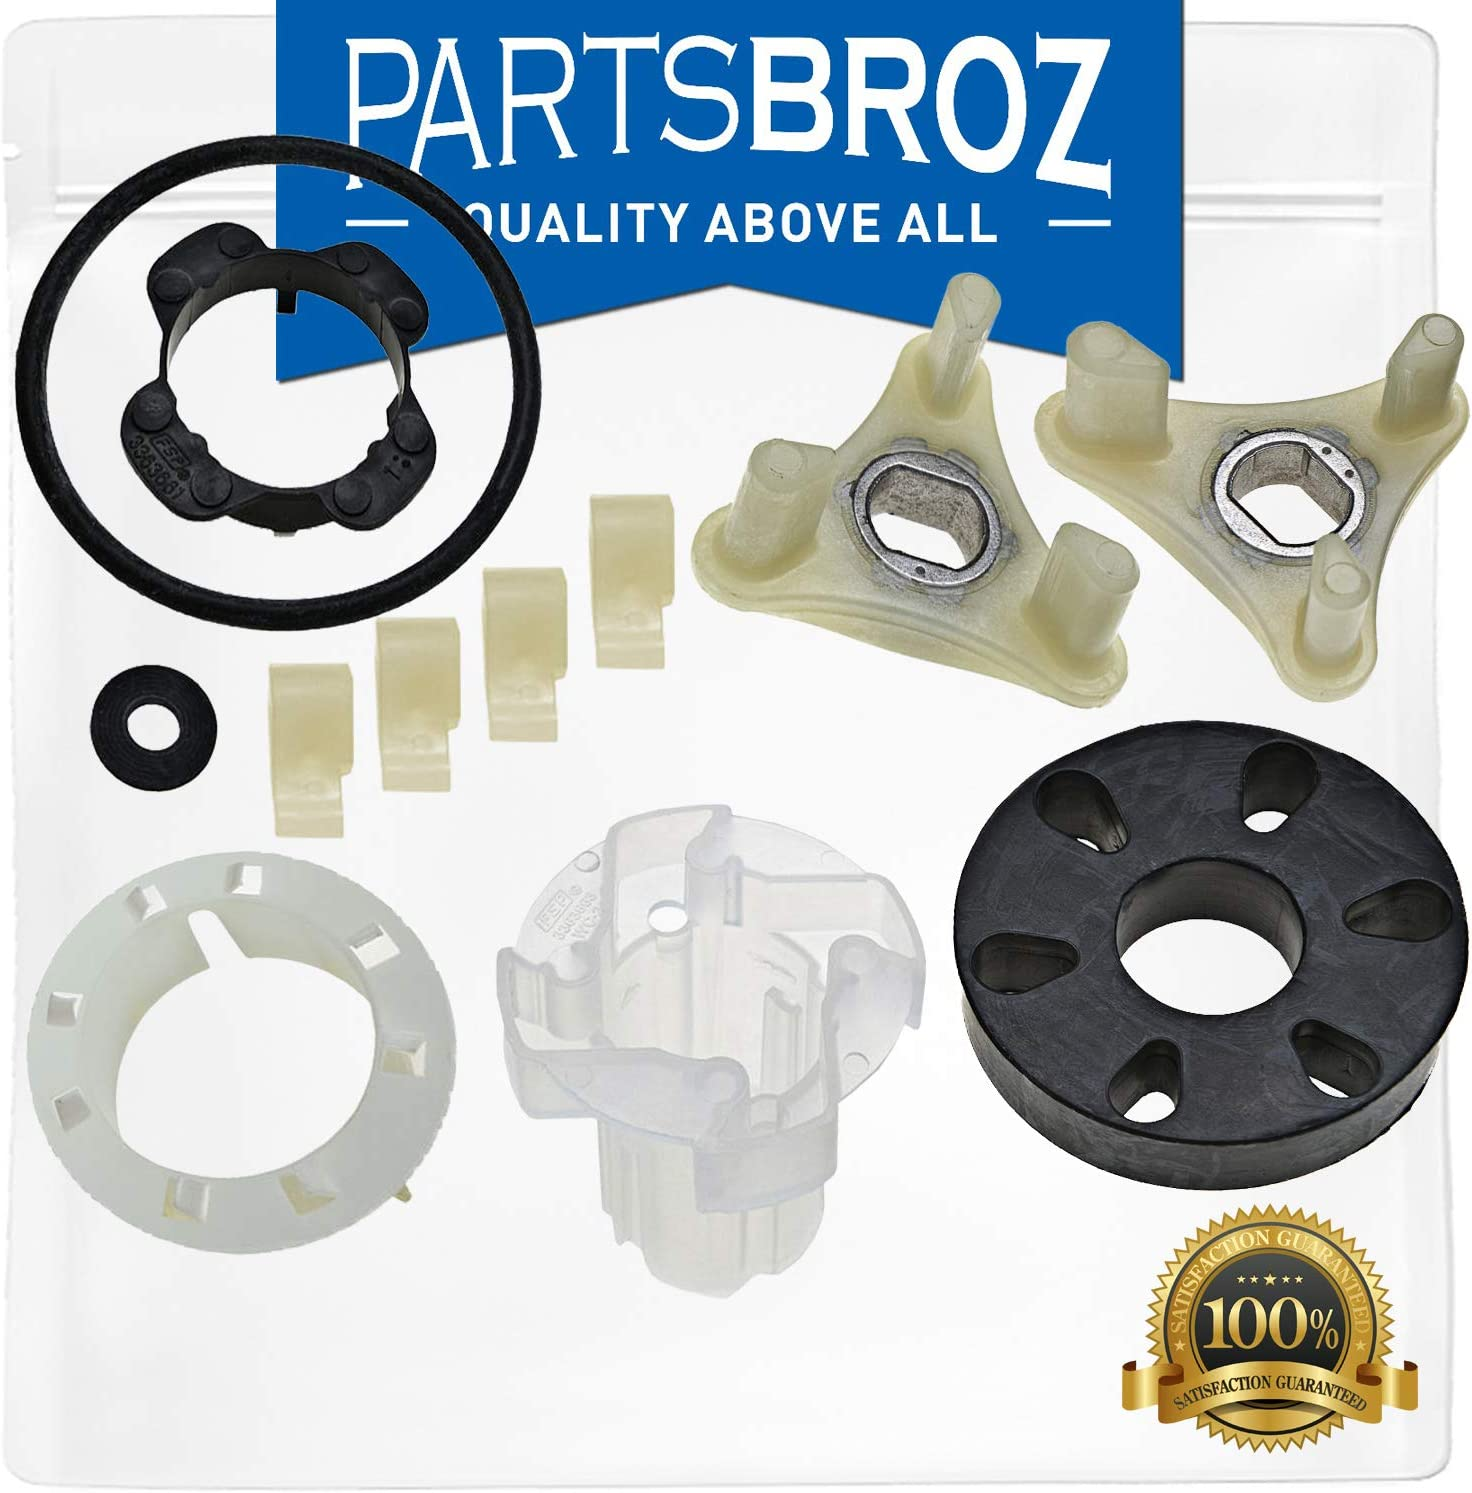 285811 Agitator Repair Kit & 285753A Direct Drive Motor Coupling by PartsBroz - Compatible with Whirlpool Washers - Replaces AP3138838, 2744, 285746, 285811VP, 3347410, 3351001, 3363663, 3948431